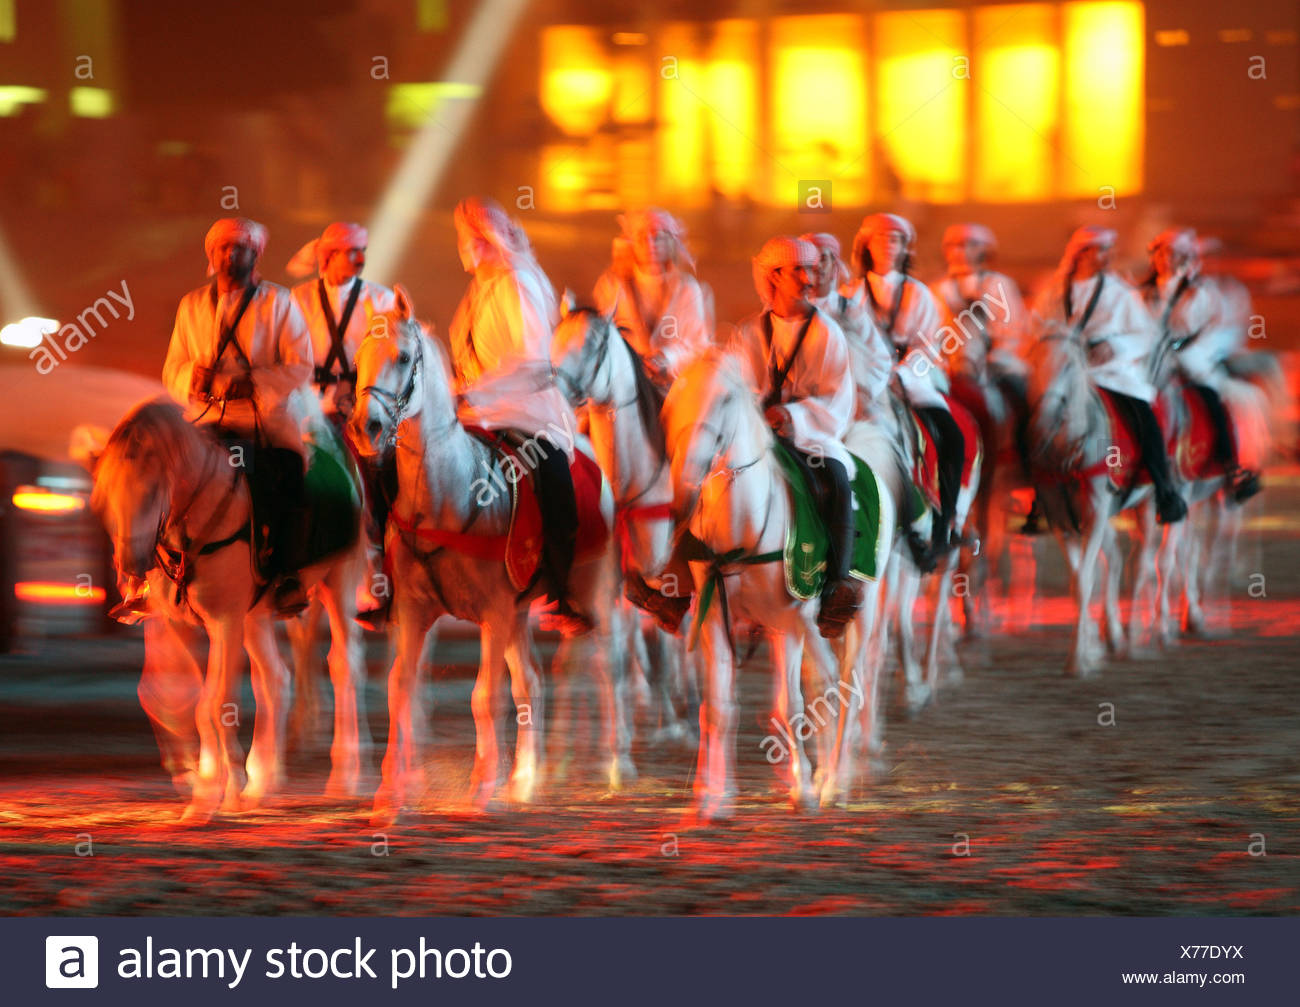 Riders in national clothing on thoroughbreds, Dubai, United Arab Emirates - Stock Image